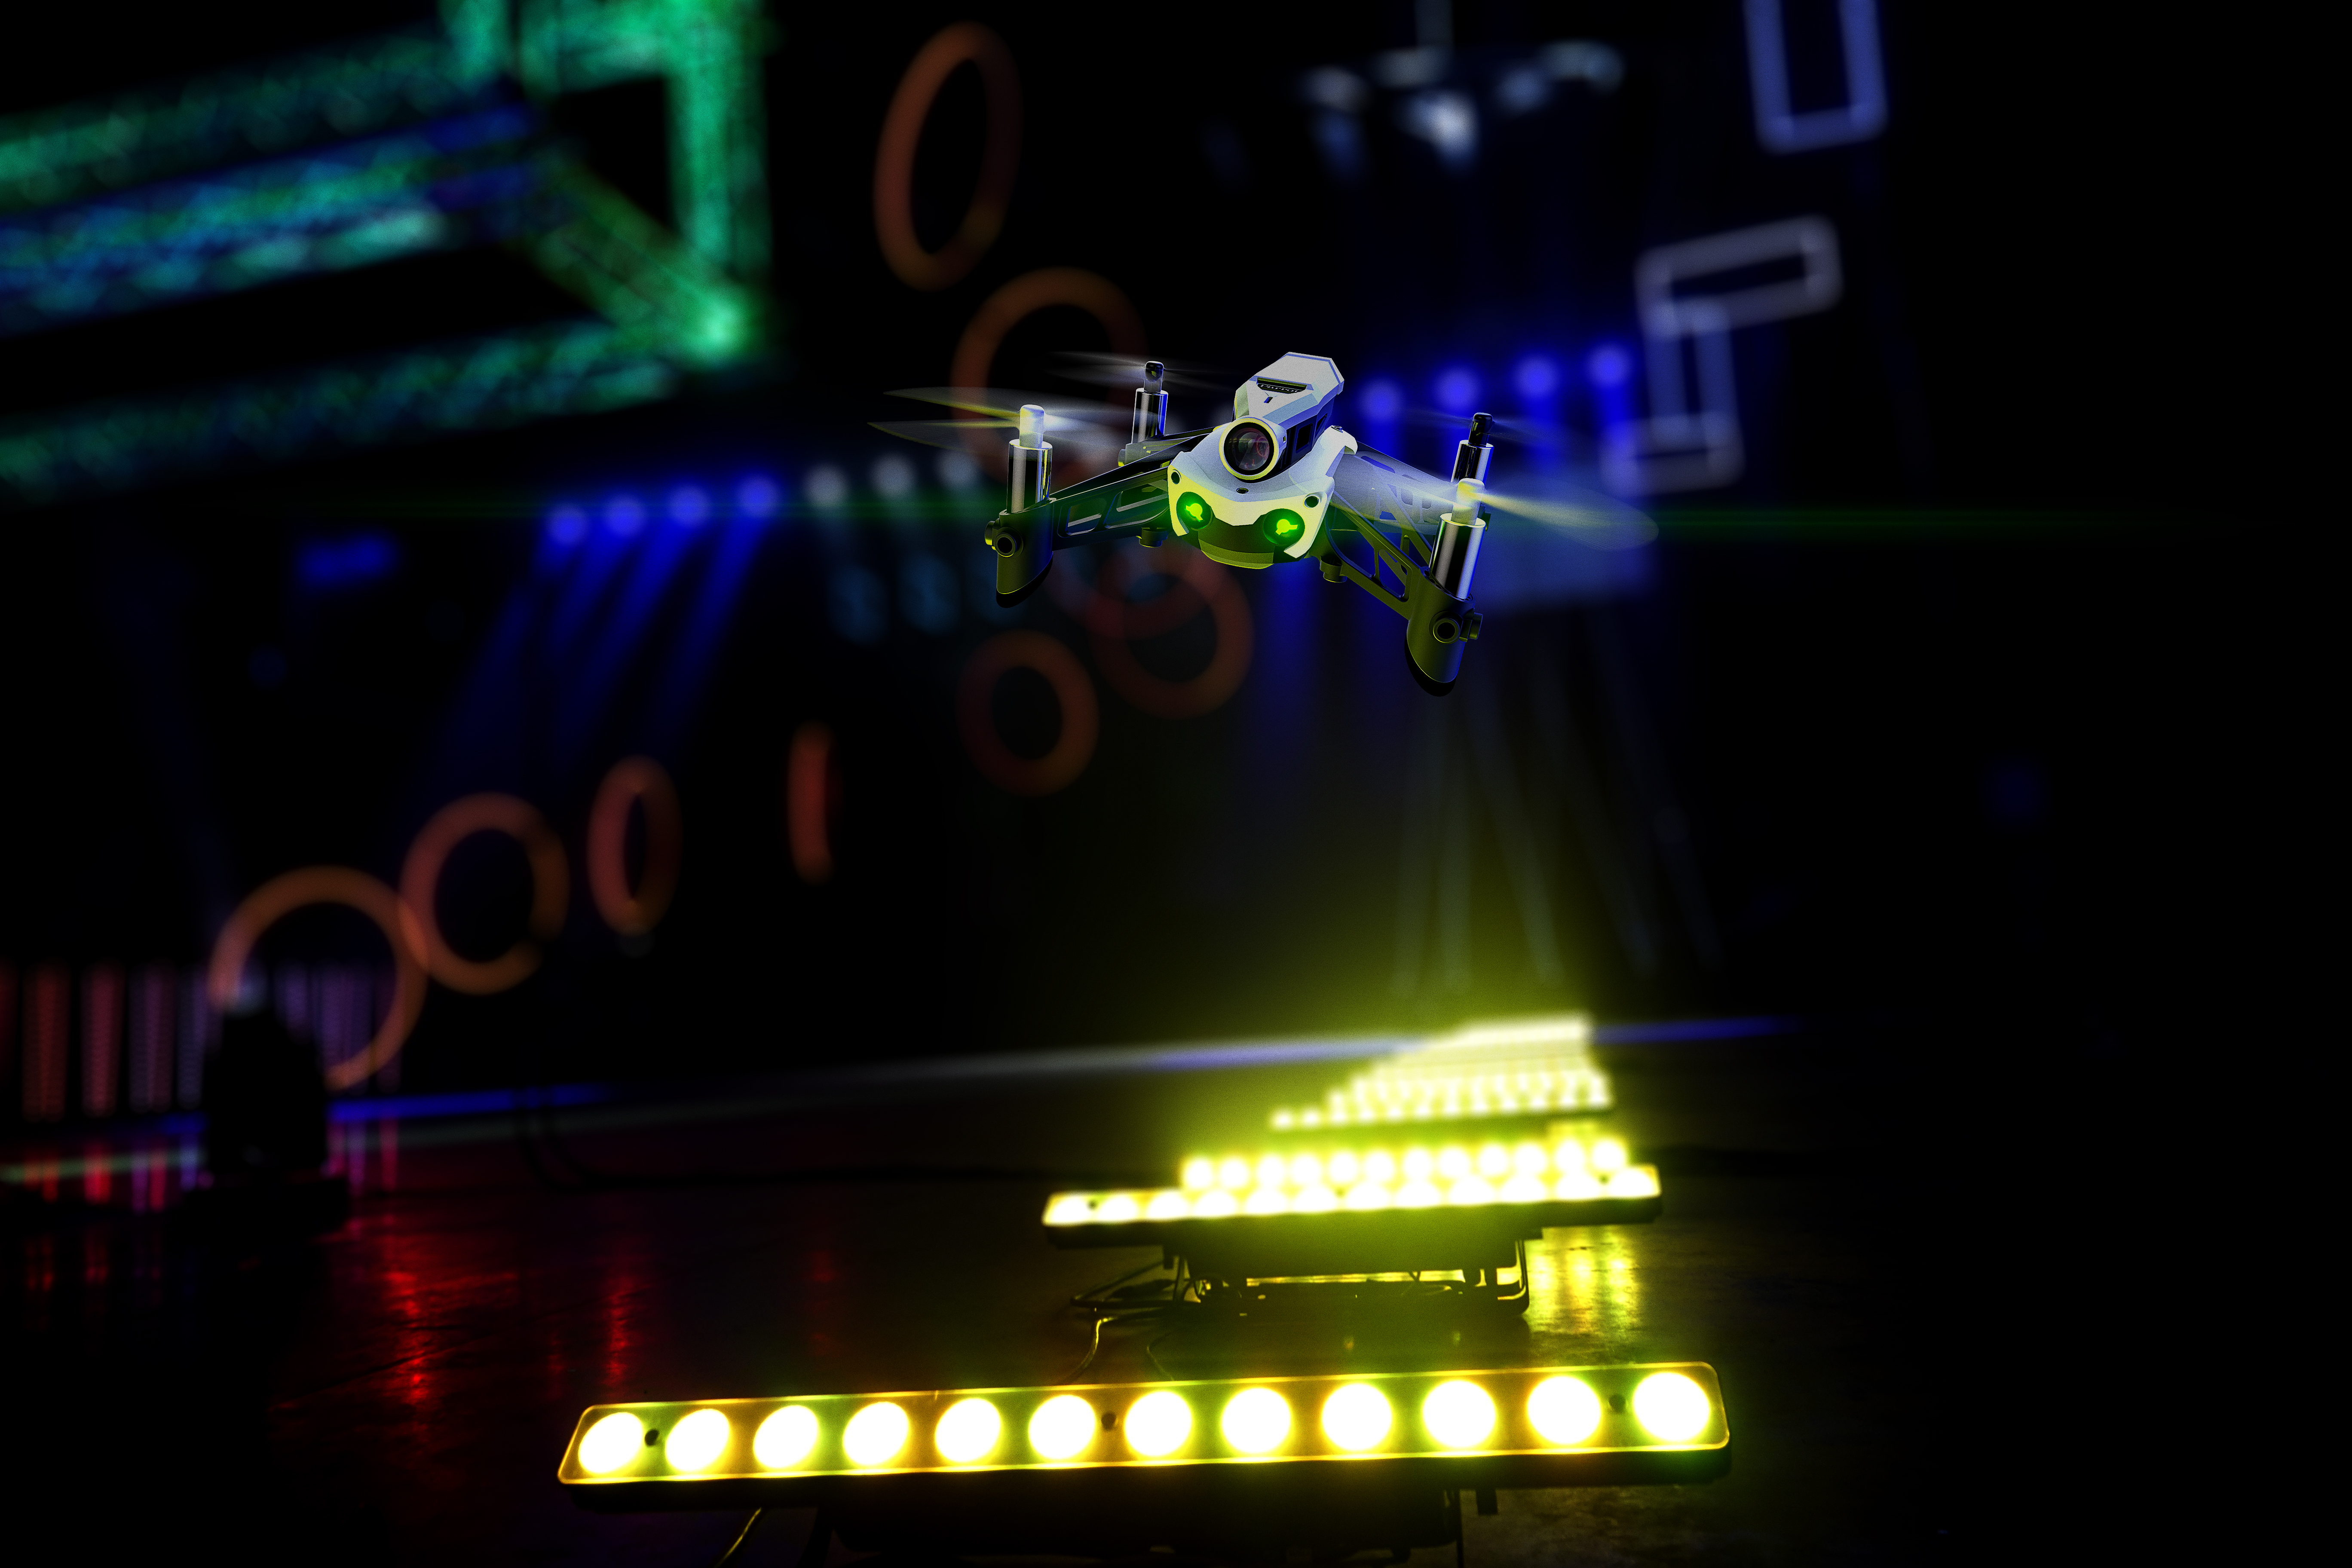 Parrot Mambo FPV positions Parrot as first major manufacturer in drone racing